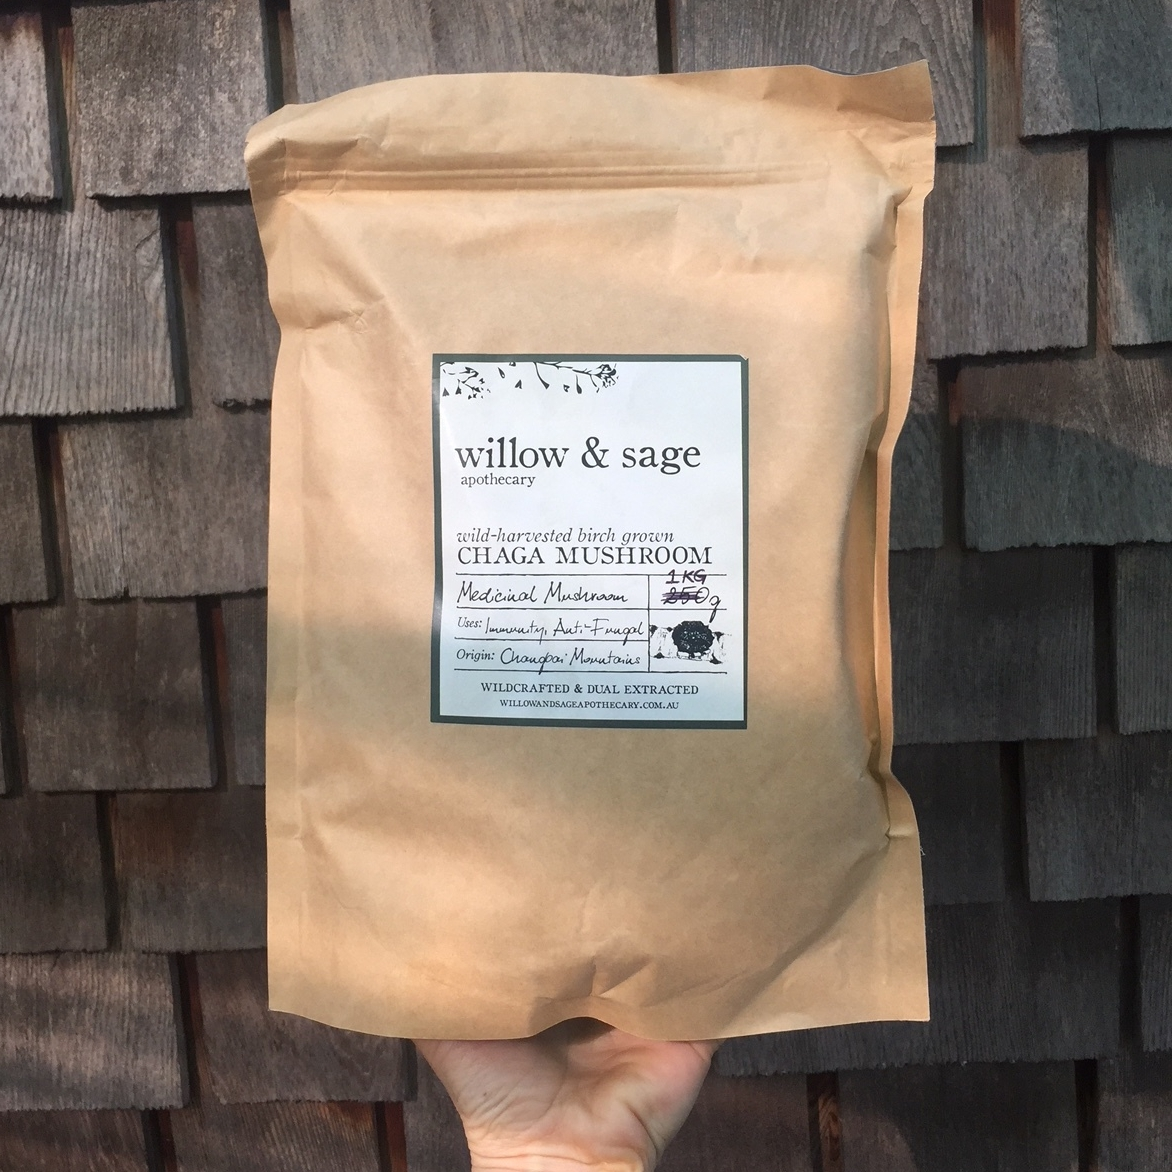 I buy Willow & Sage Apothecary's dual extracted wild harvested Chaga by the kilo. The price is more than fair, especially when you buy in bulk (competing companies are selling the same product for  double the price). Click image for more info.